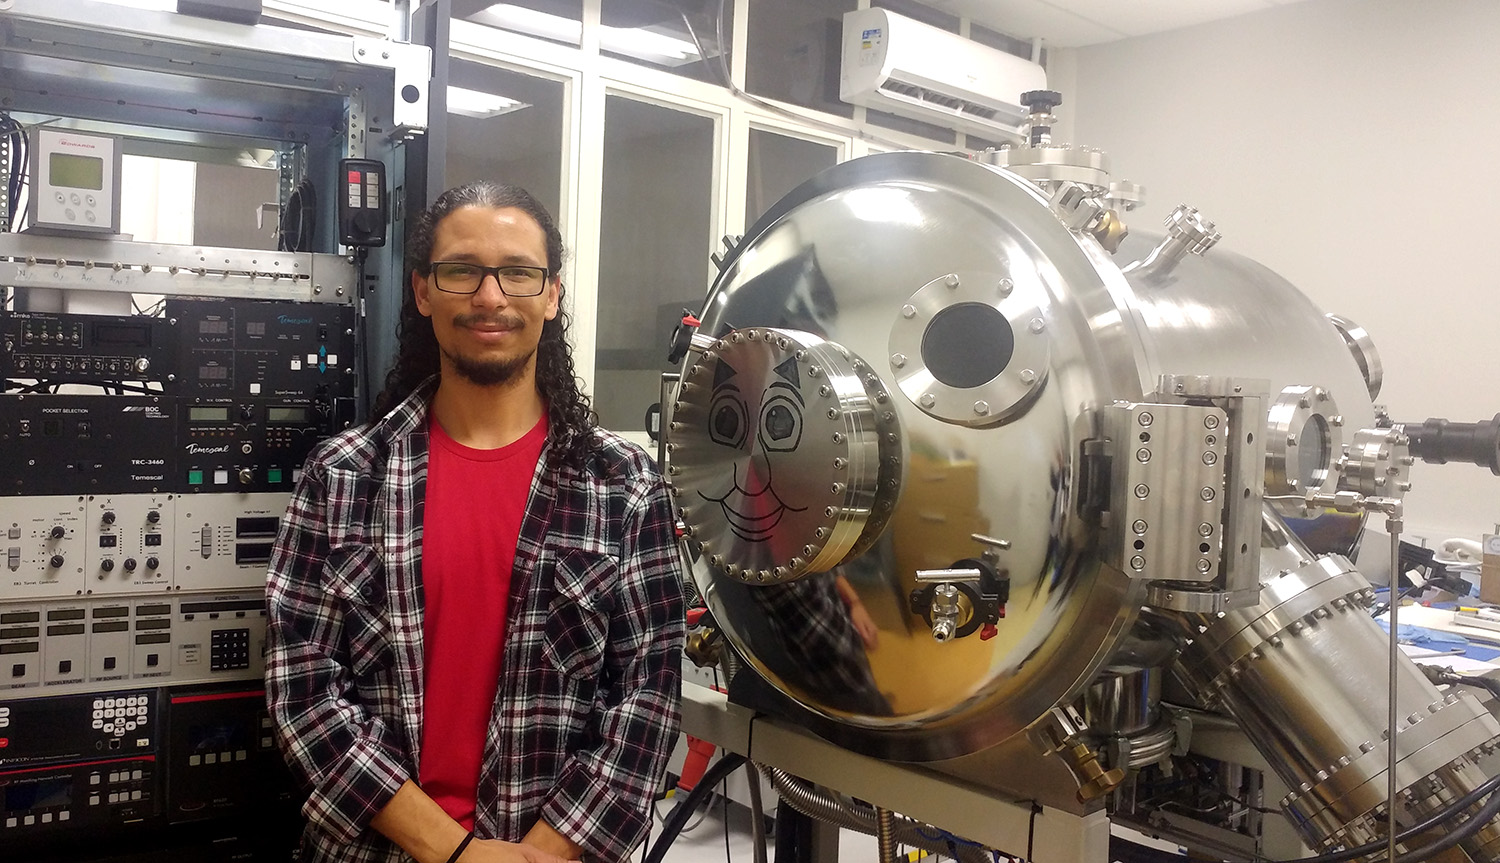 Lucas Cervi - IBAD – Ion Beam Assisted Deposition (Deposição por Feixes Iônicos Assistida) - Instituto de Física da USP